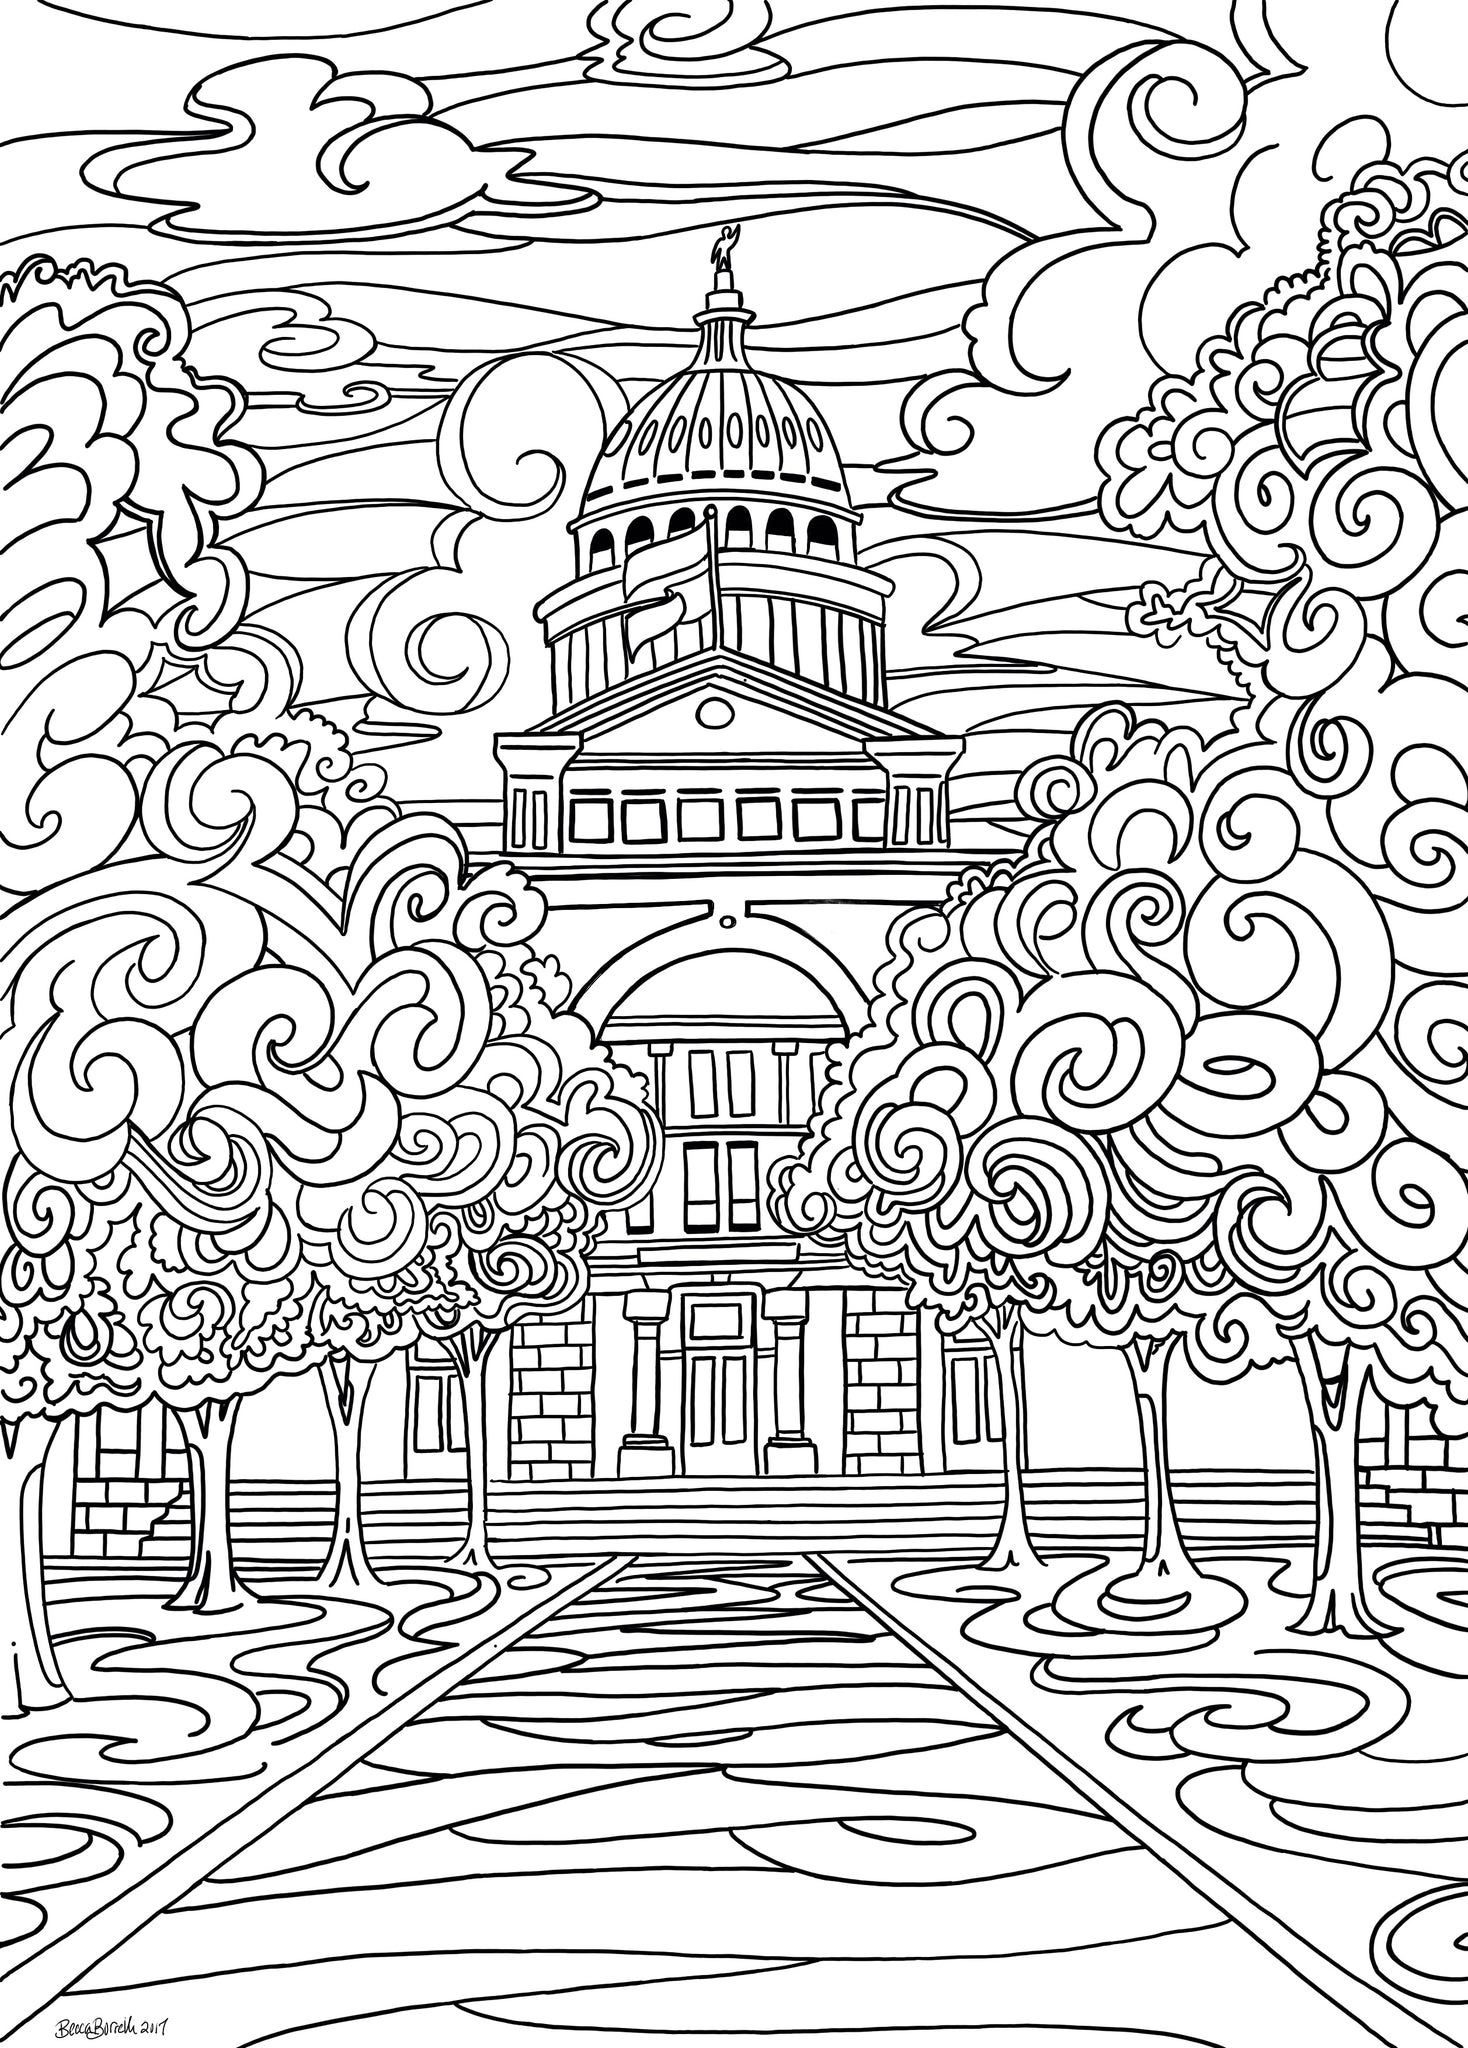 Austin, TX Capitol Coloring Page - Borrelli Illustrations